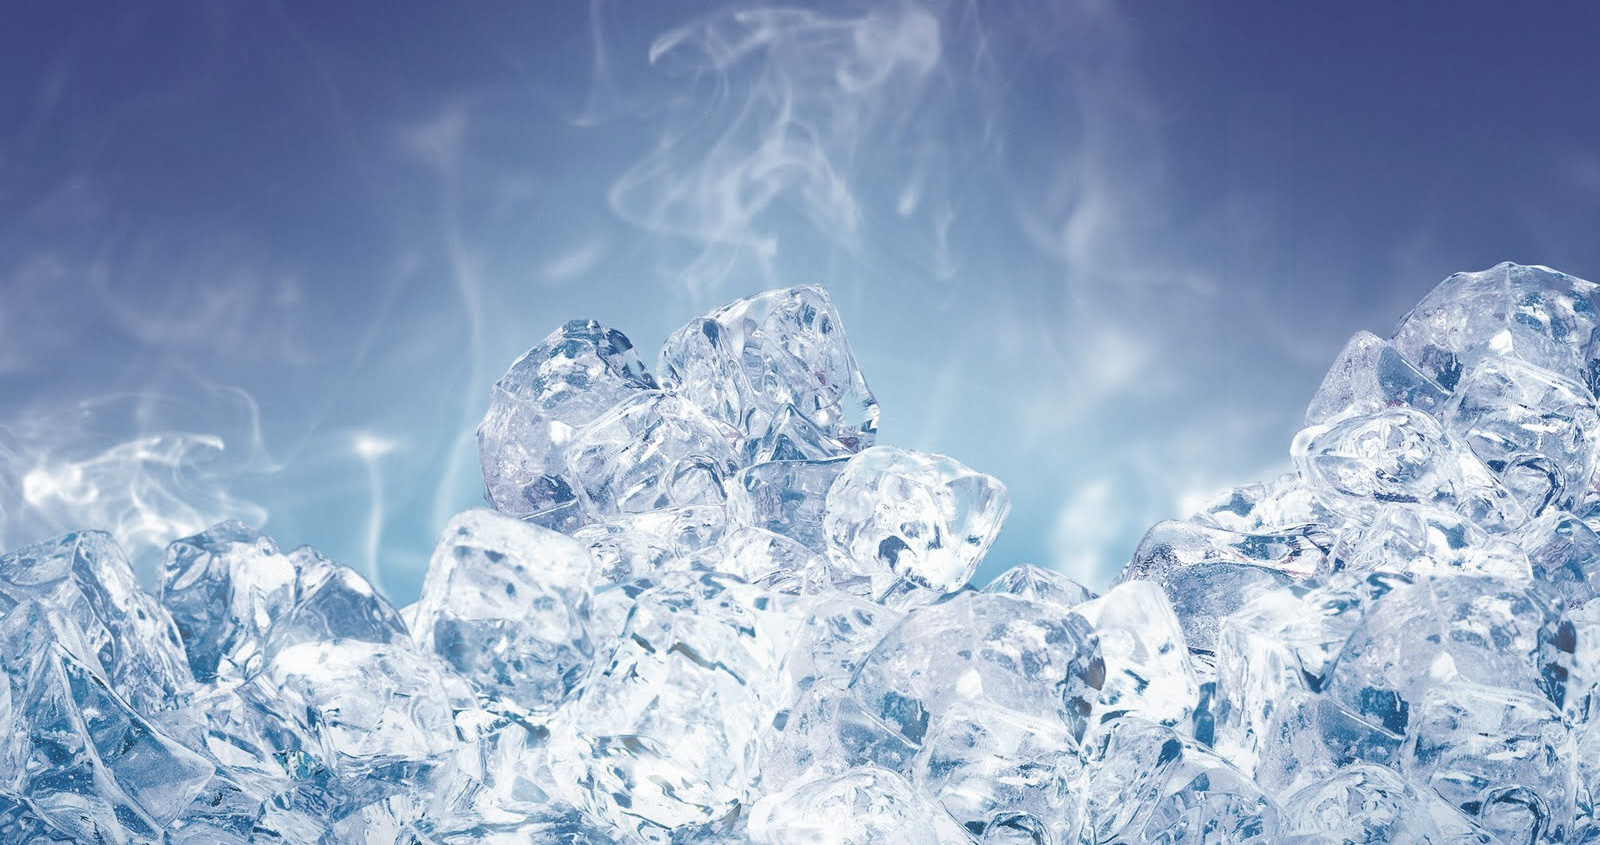 diamonds, ice, cold, freeze, Frozen desktop background #2750